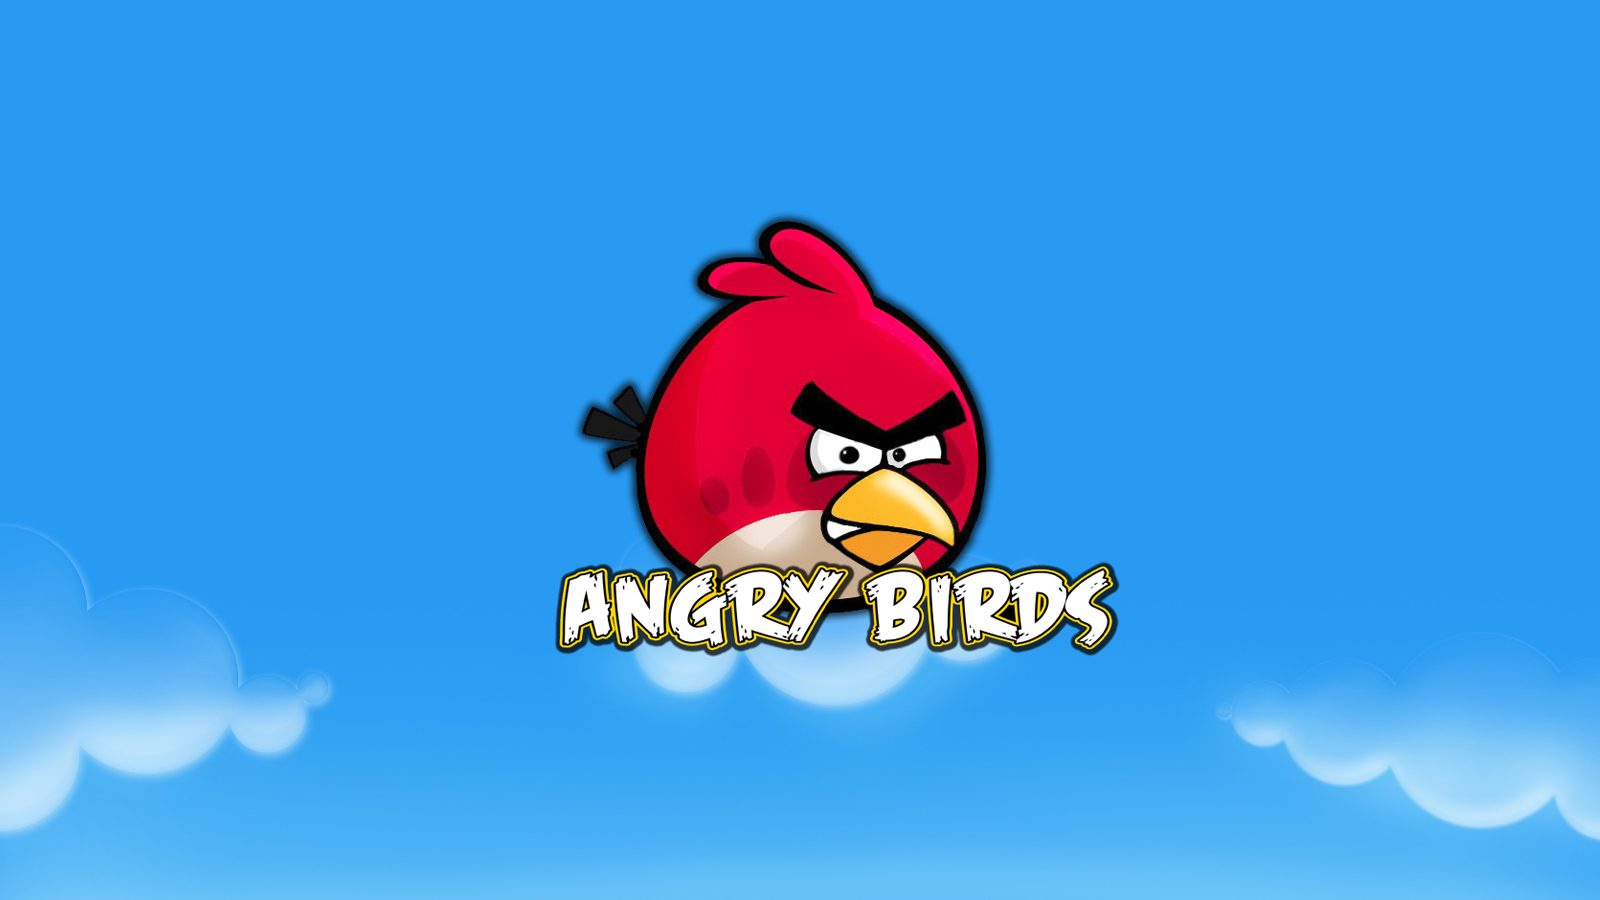 Angry Birds - iOS (iPhone, iPad, iPod touch)